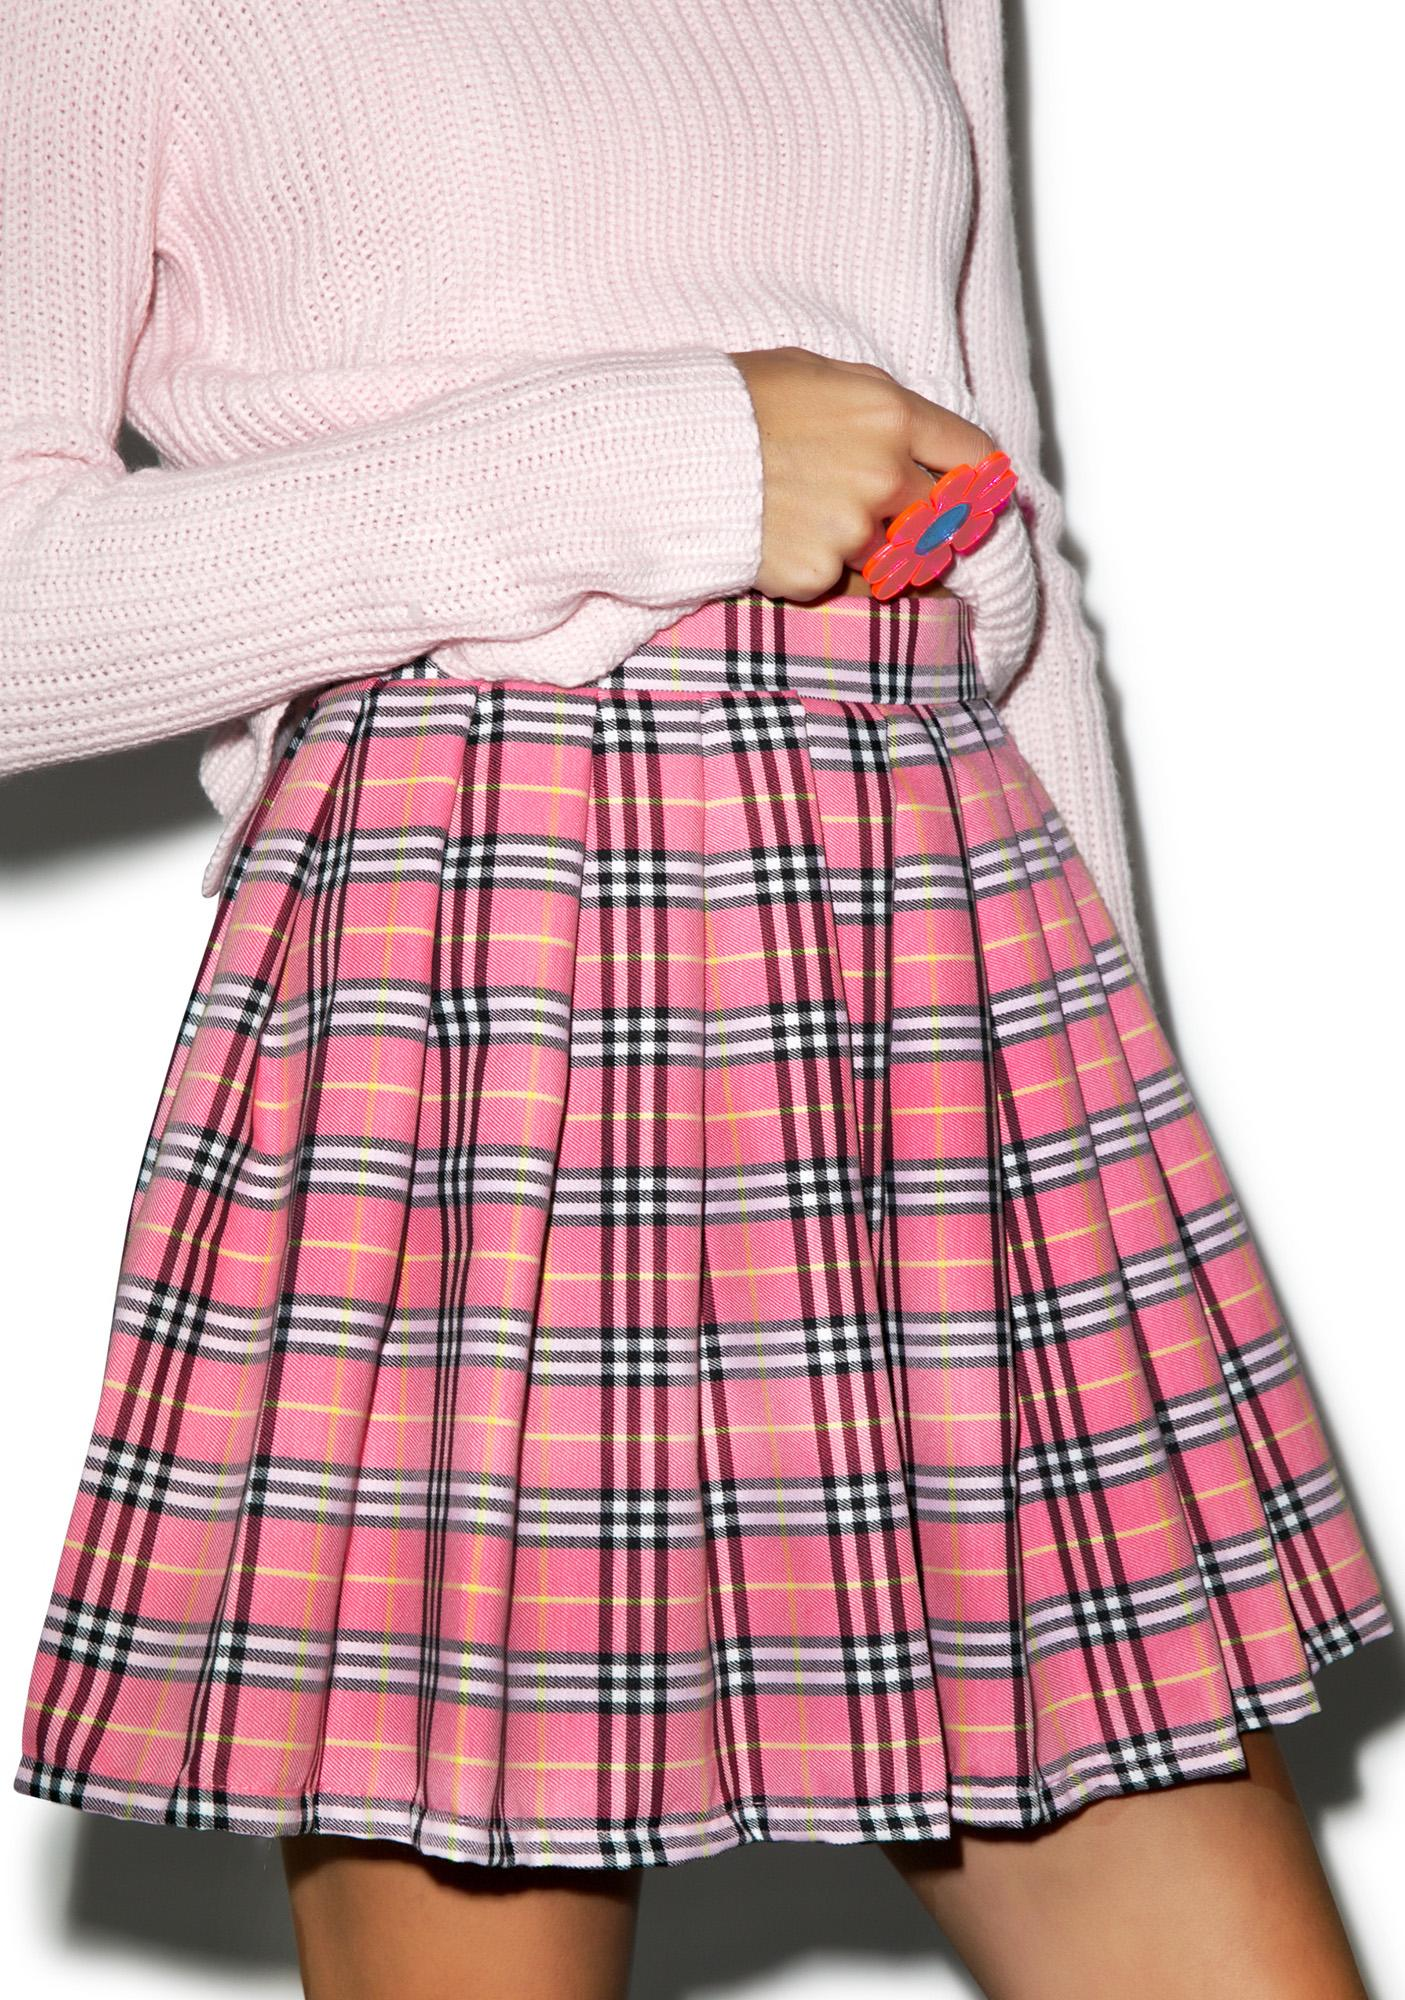 Reality Bites Baby Plaid Skirt